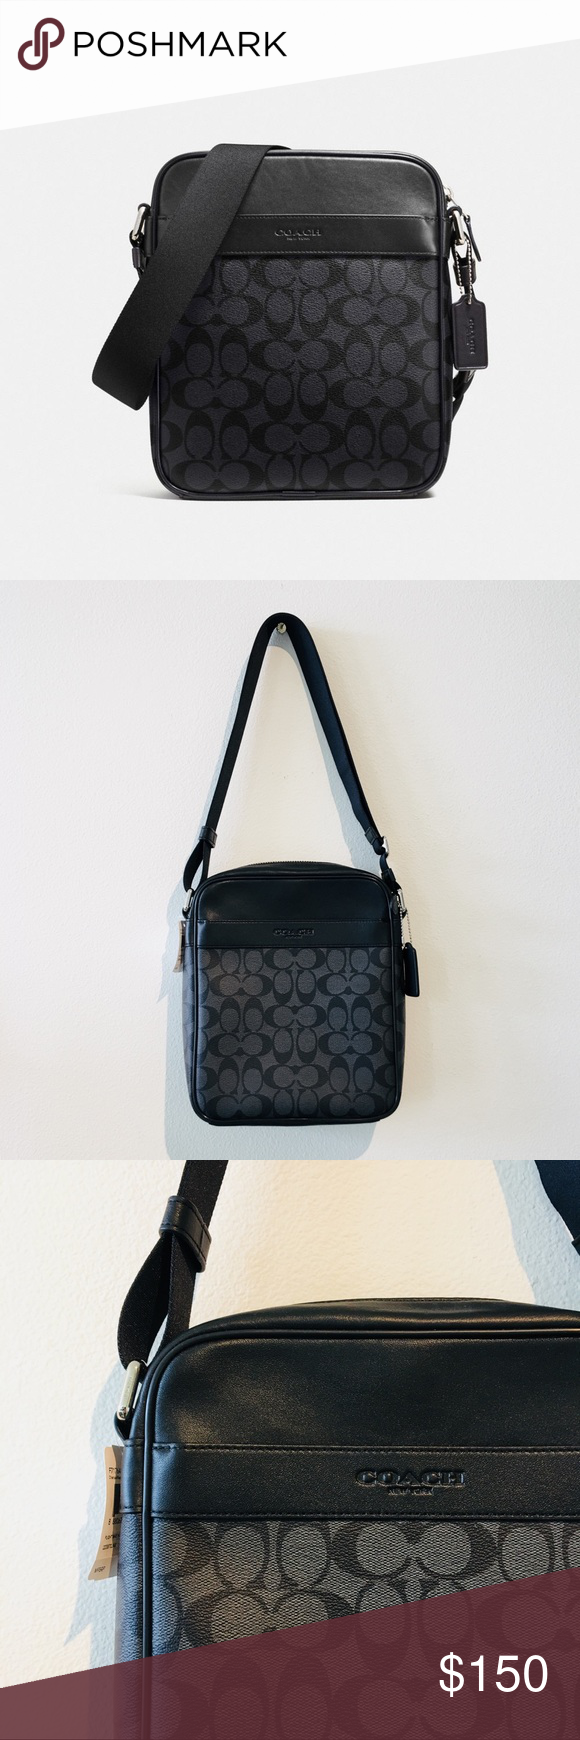 AUTHENTIC COACH Charcoal Black messenger bag NWT. No flaws Authentic Coach  messenger bag. I bought this for traveling but I have never used it because  it ... 0fc8bcf3dce37